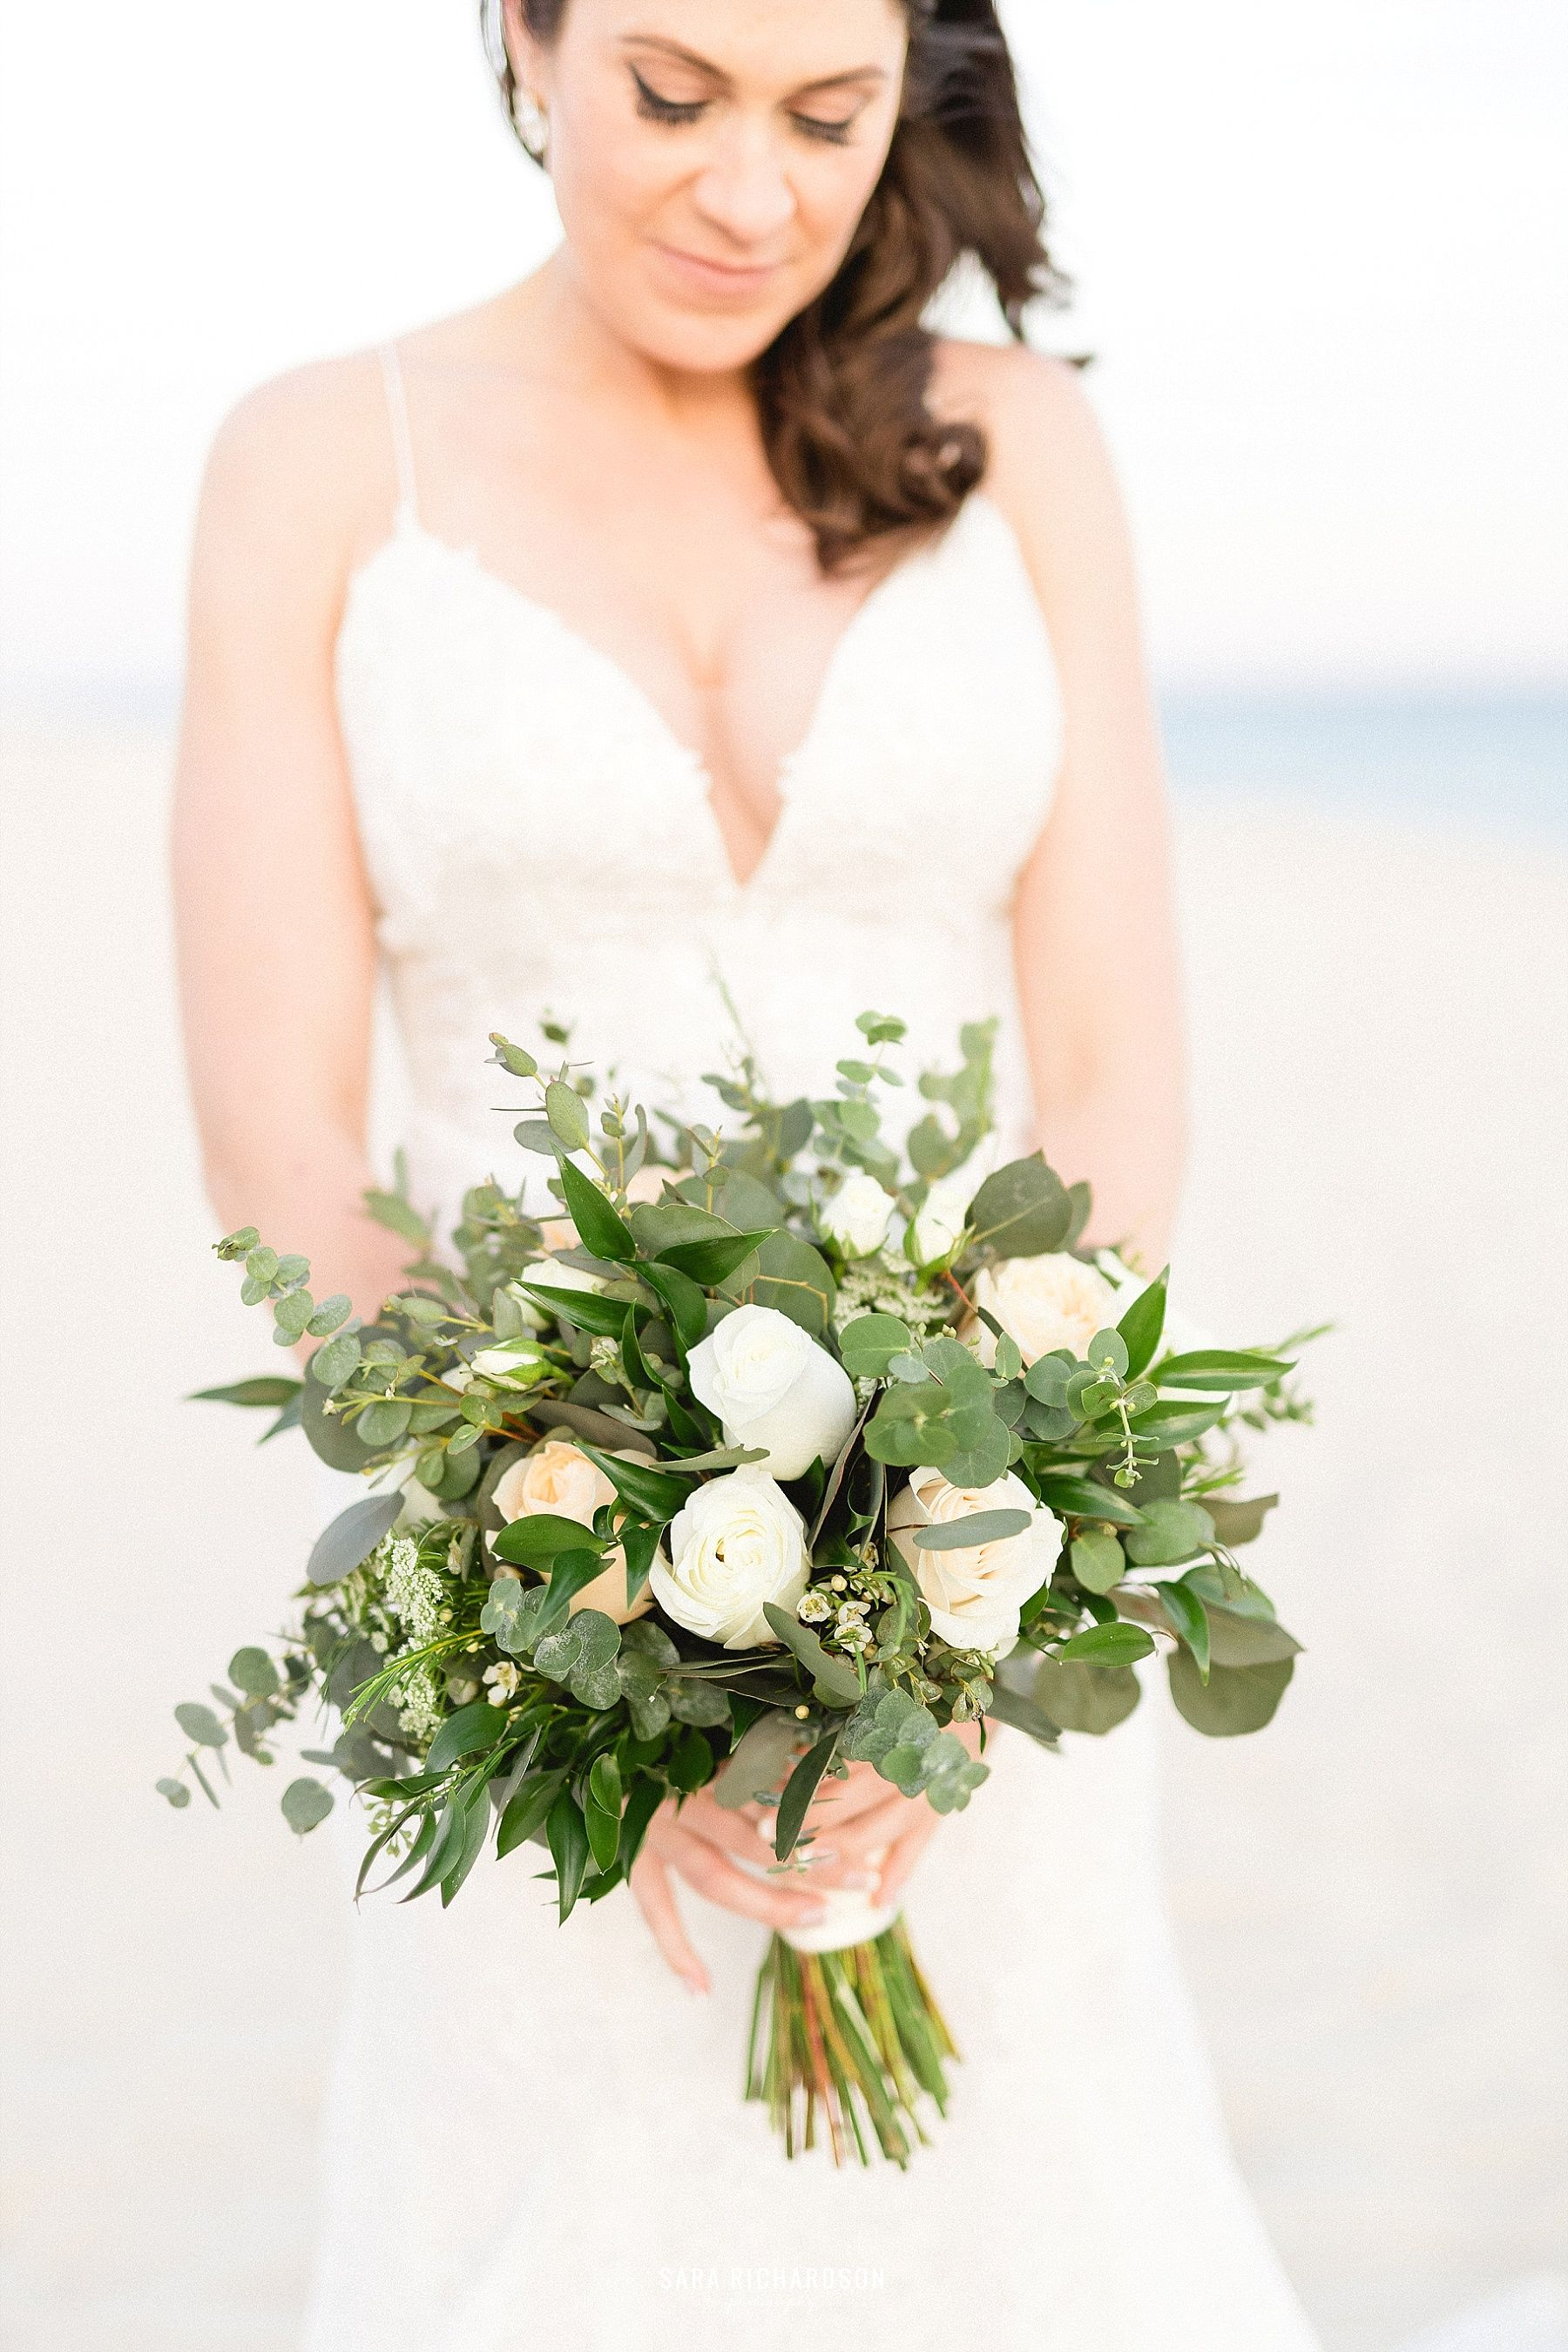 Bride with her Bouquet on her wedding day. Destination Wedding in Cabo Mexico. Wedding Planning by Cabo Wedding Services.